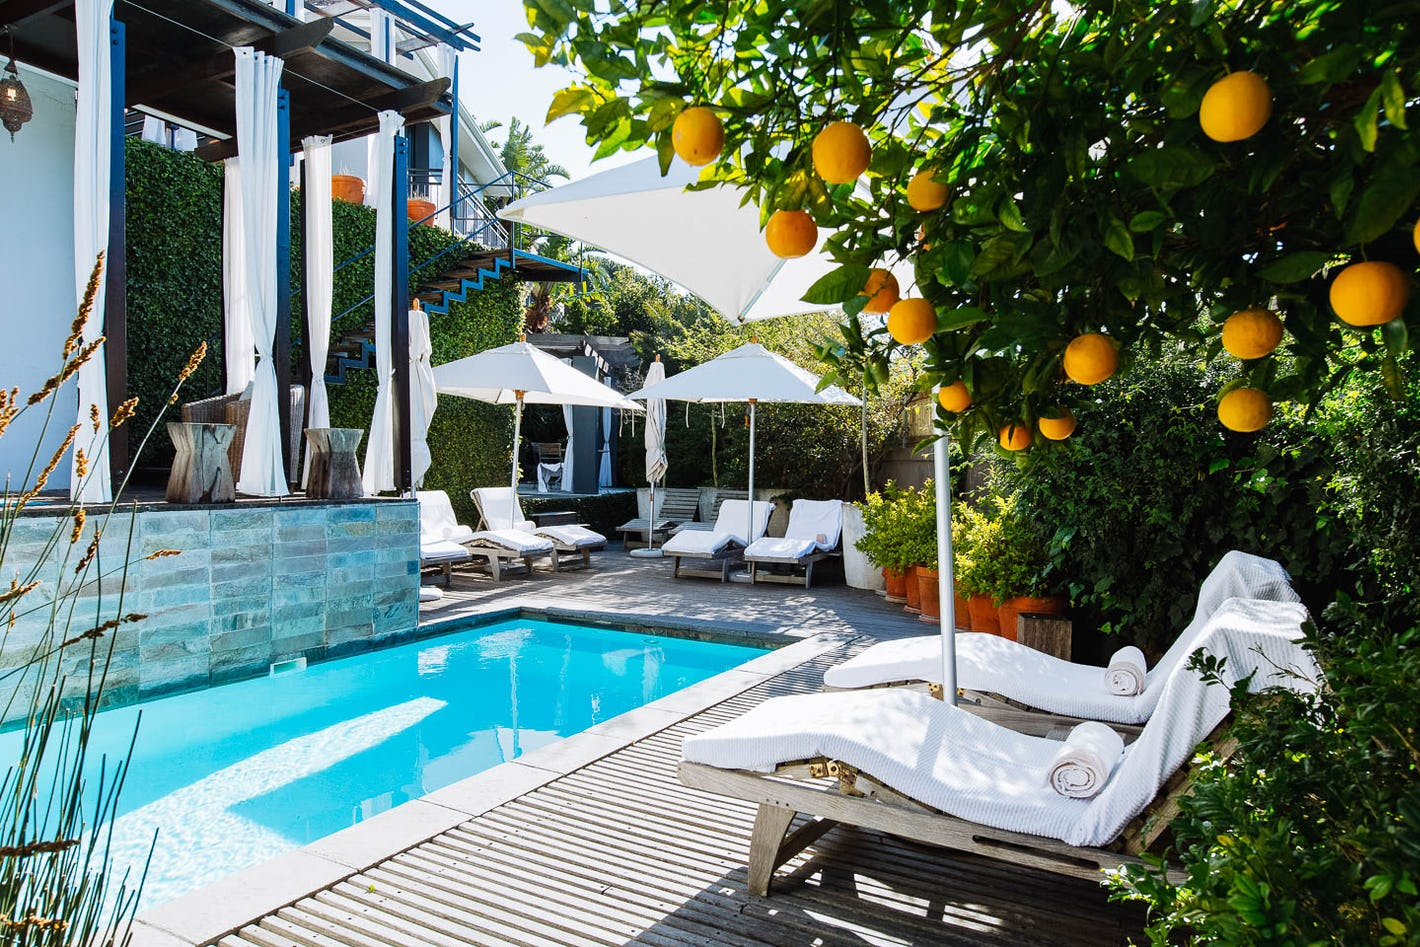 Design your south africa safari online timbuktu travel for Pool designs under 50 000